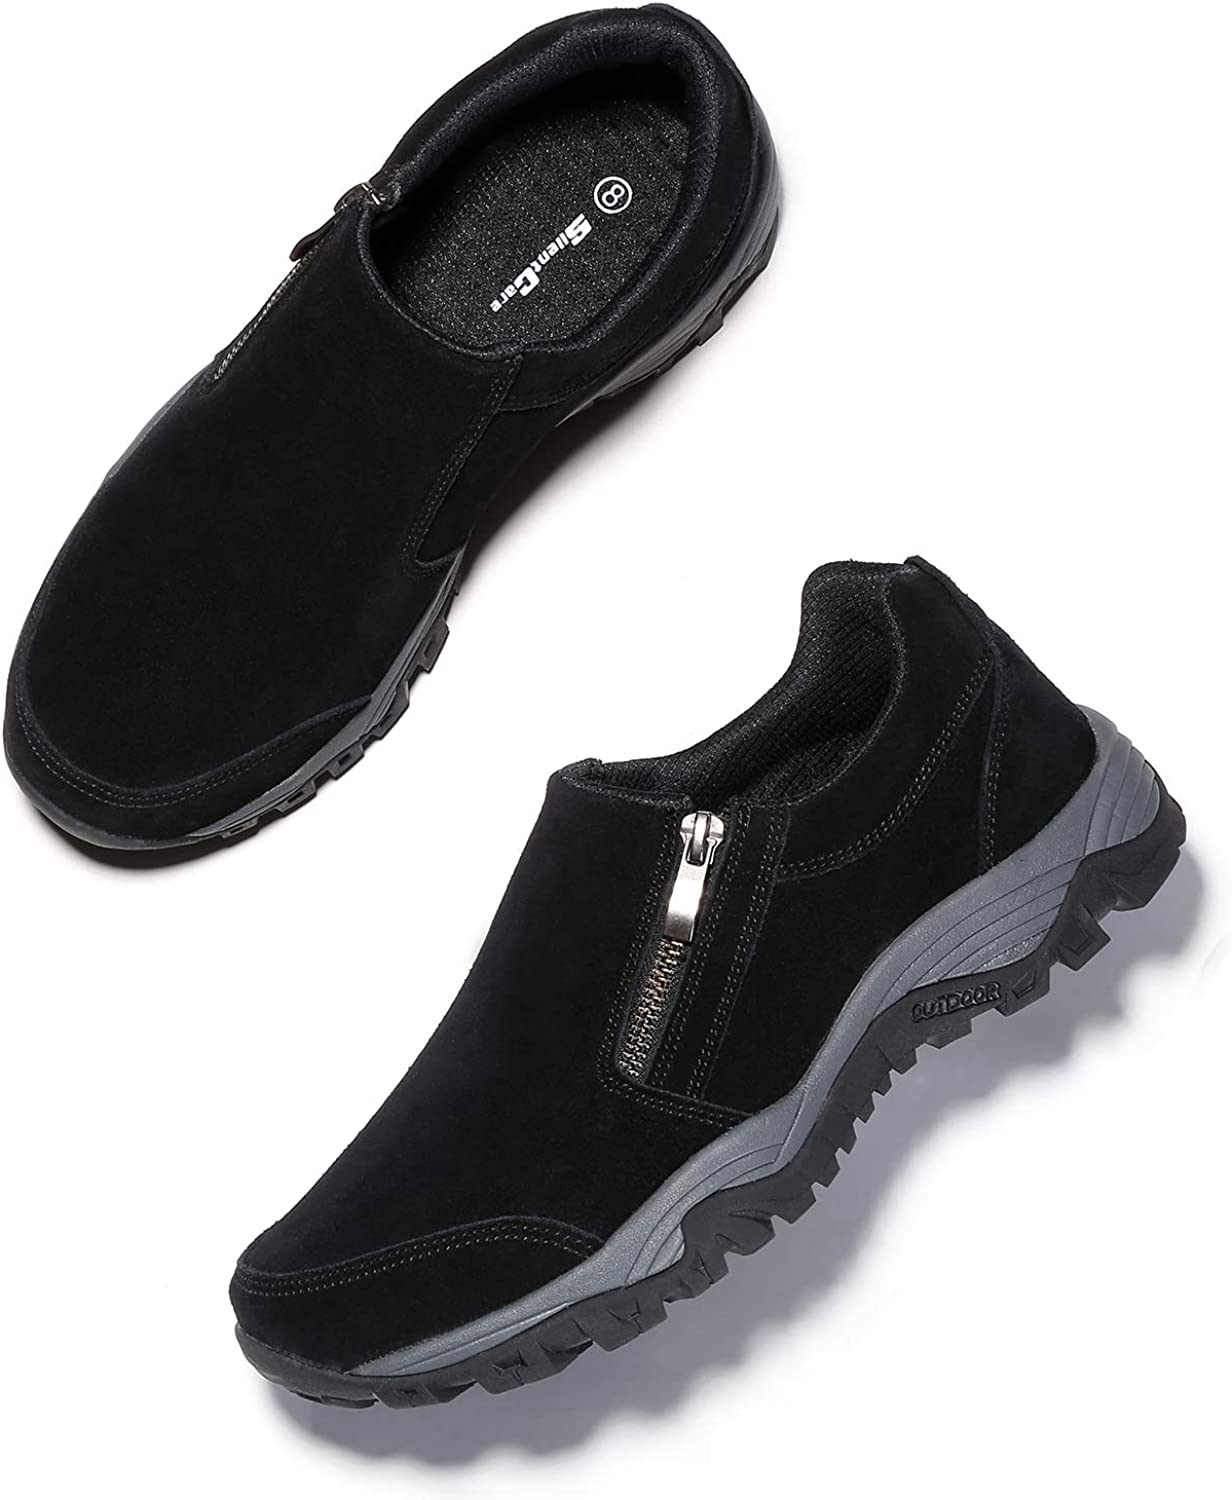 SILENTCARE Mens Loafers Casual Shoes,Breathable Lightweight Zipper Slip On Sneakers, Hiking Shoes for Outdoor Trail Trekking 11 M US, Black